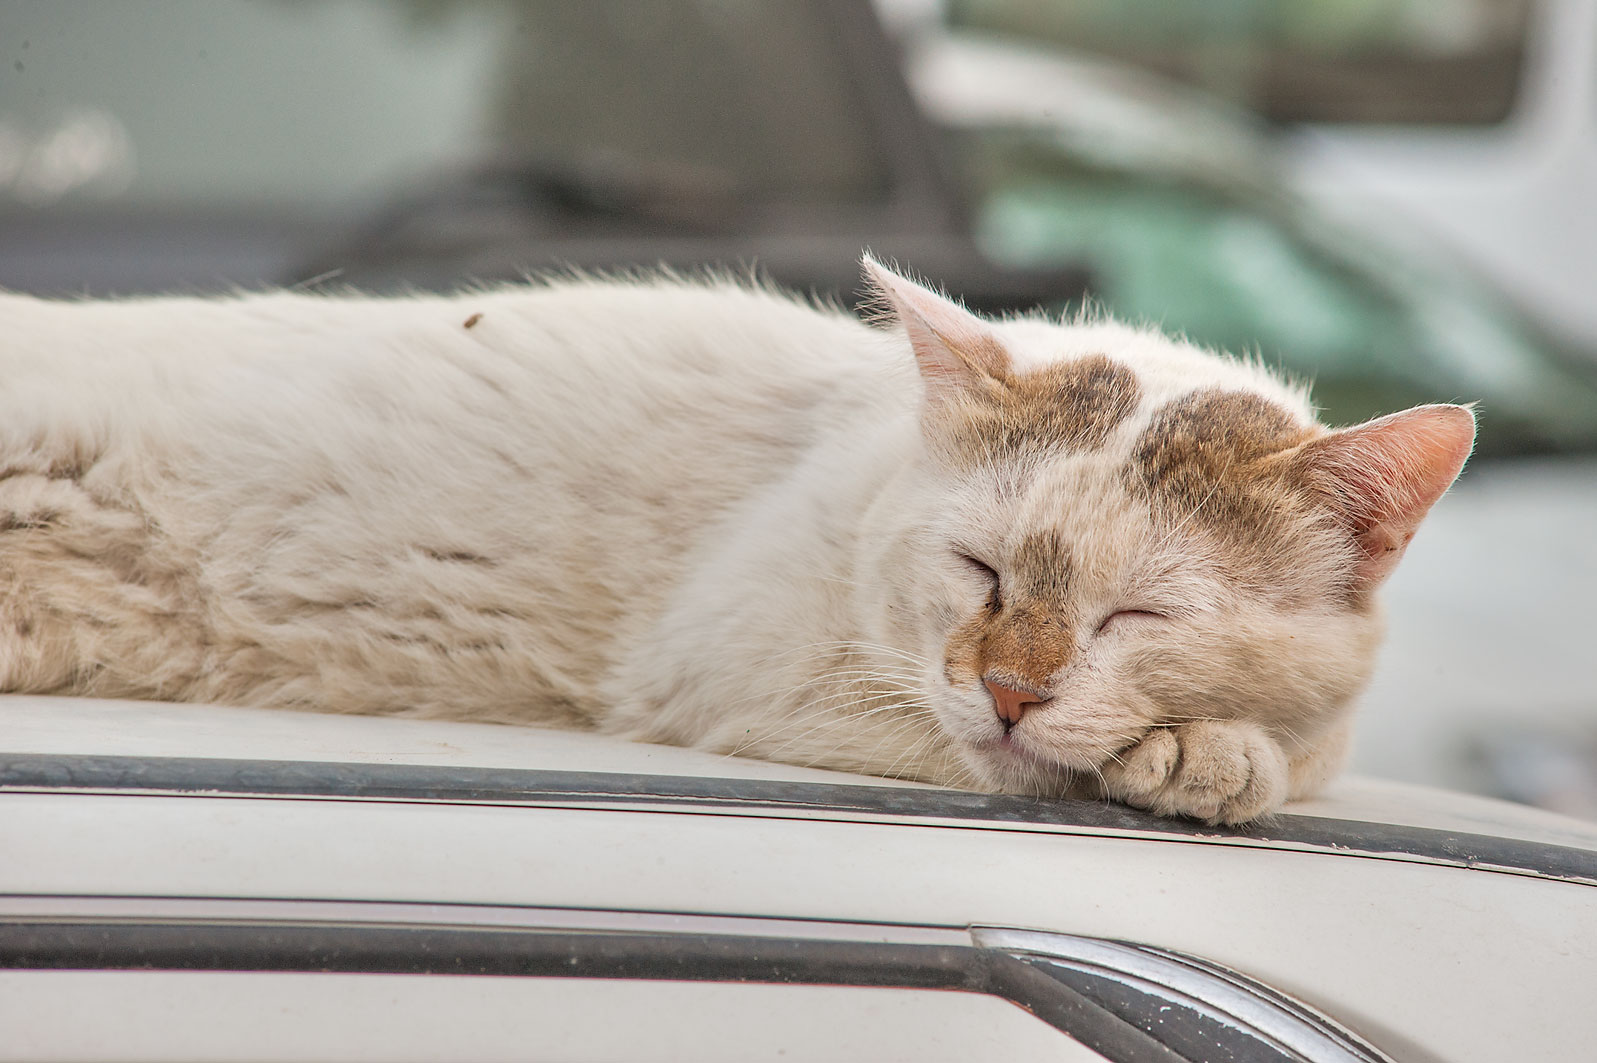 Whitish cat sleeping on a car at morning on Umm Wishad St. in Musheirib area. Doha, Qatar